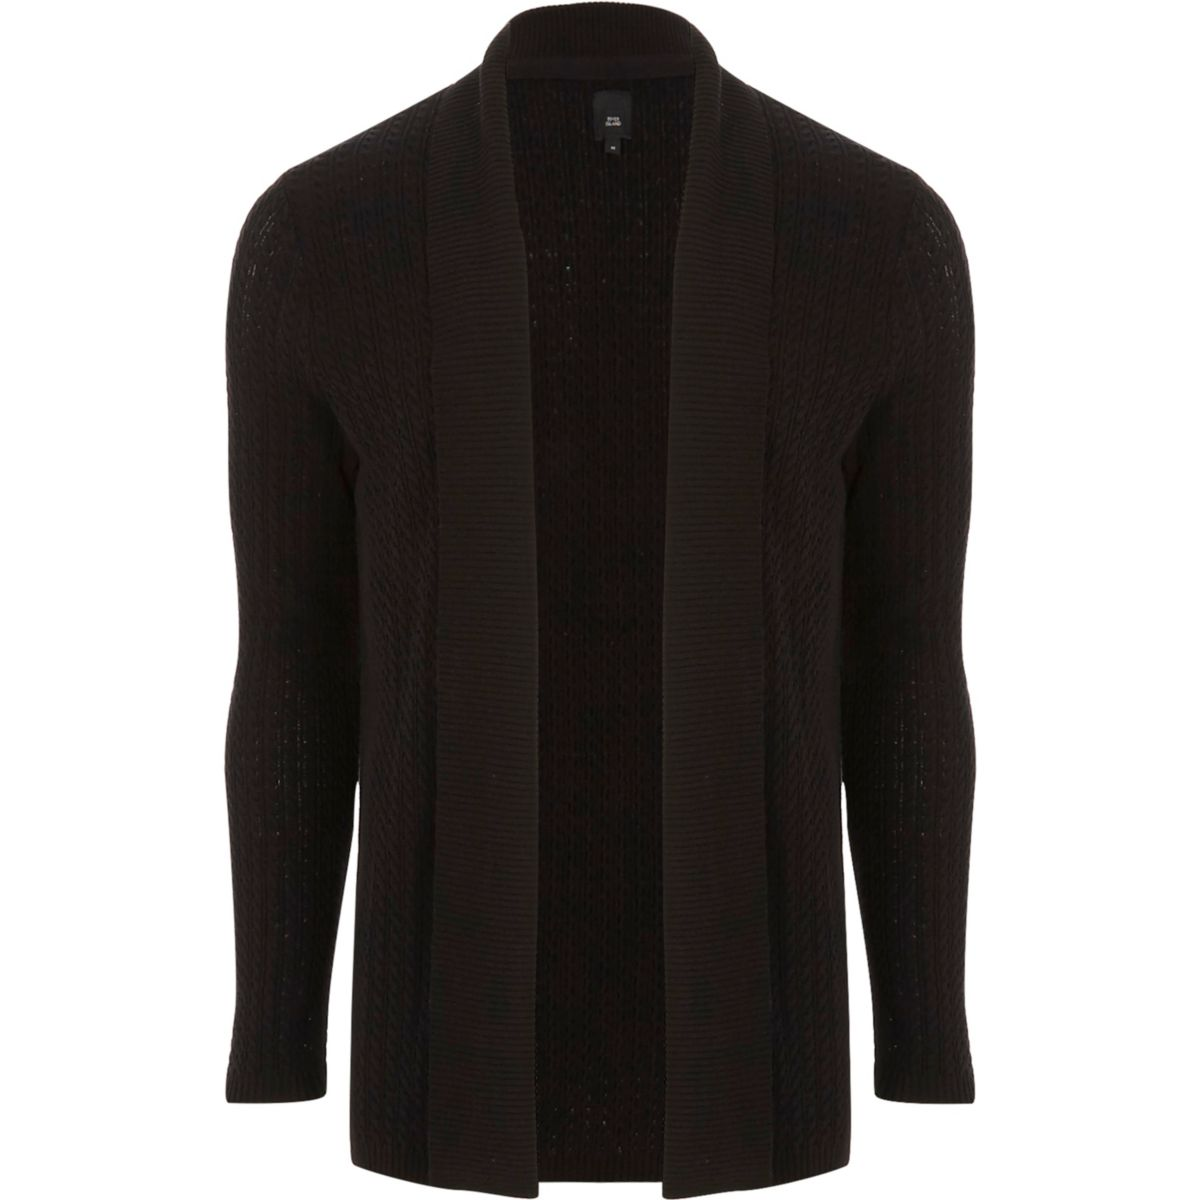 Black cable knit open front cardigan - Cardigans - Jumpers ...